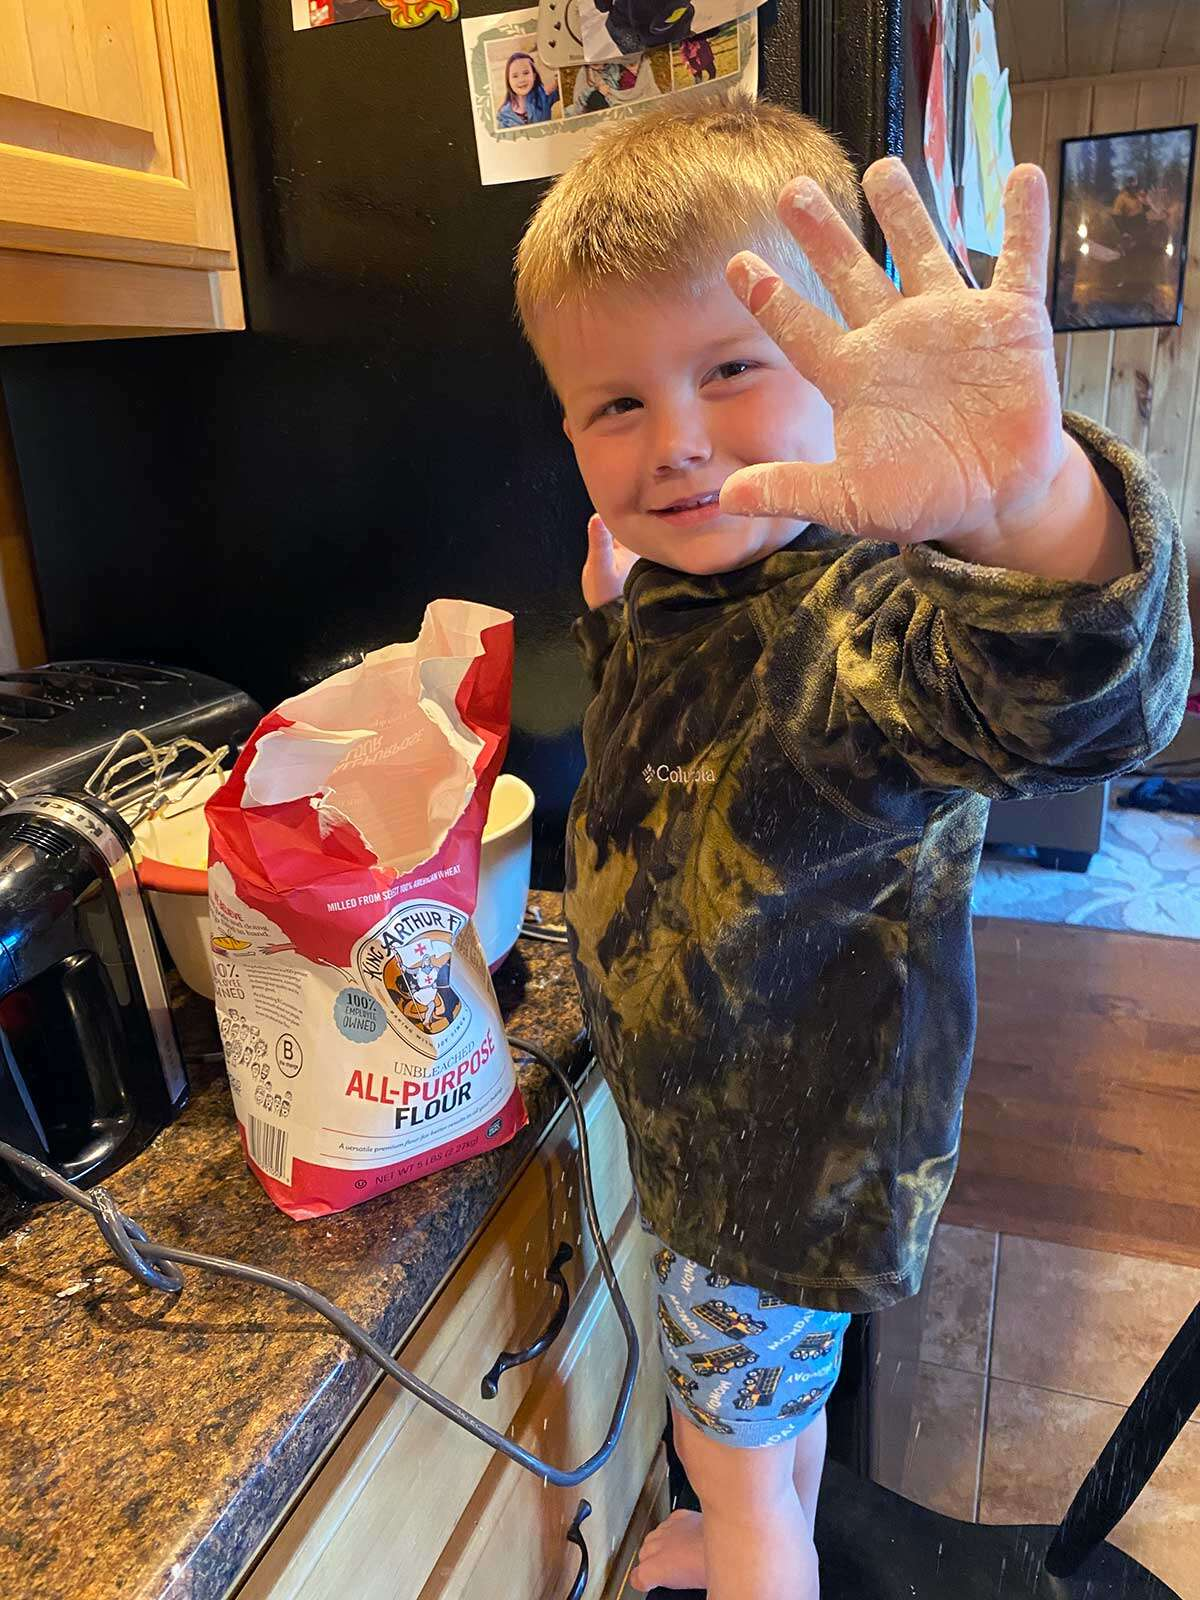 A child with a bag of King Arthur Flour in the kitchen holding out a flour-covered hand